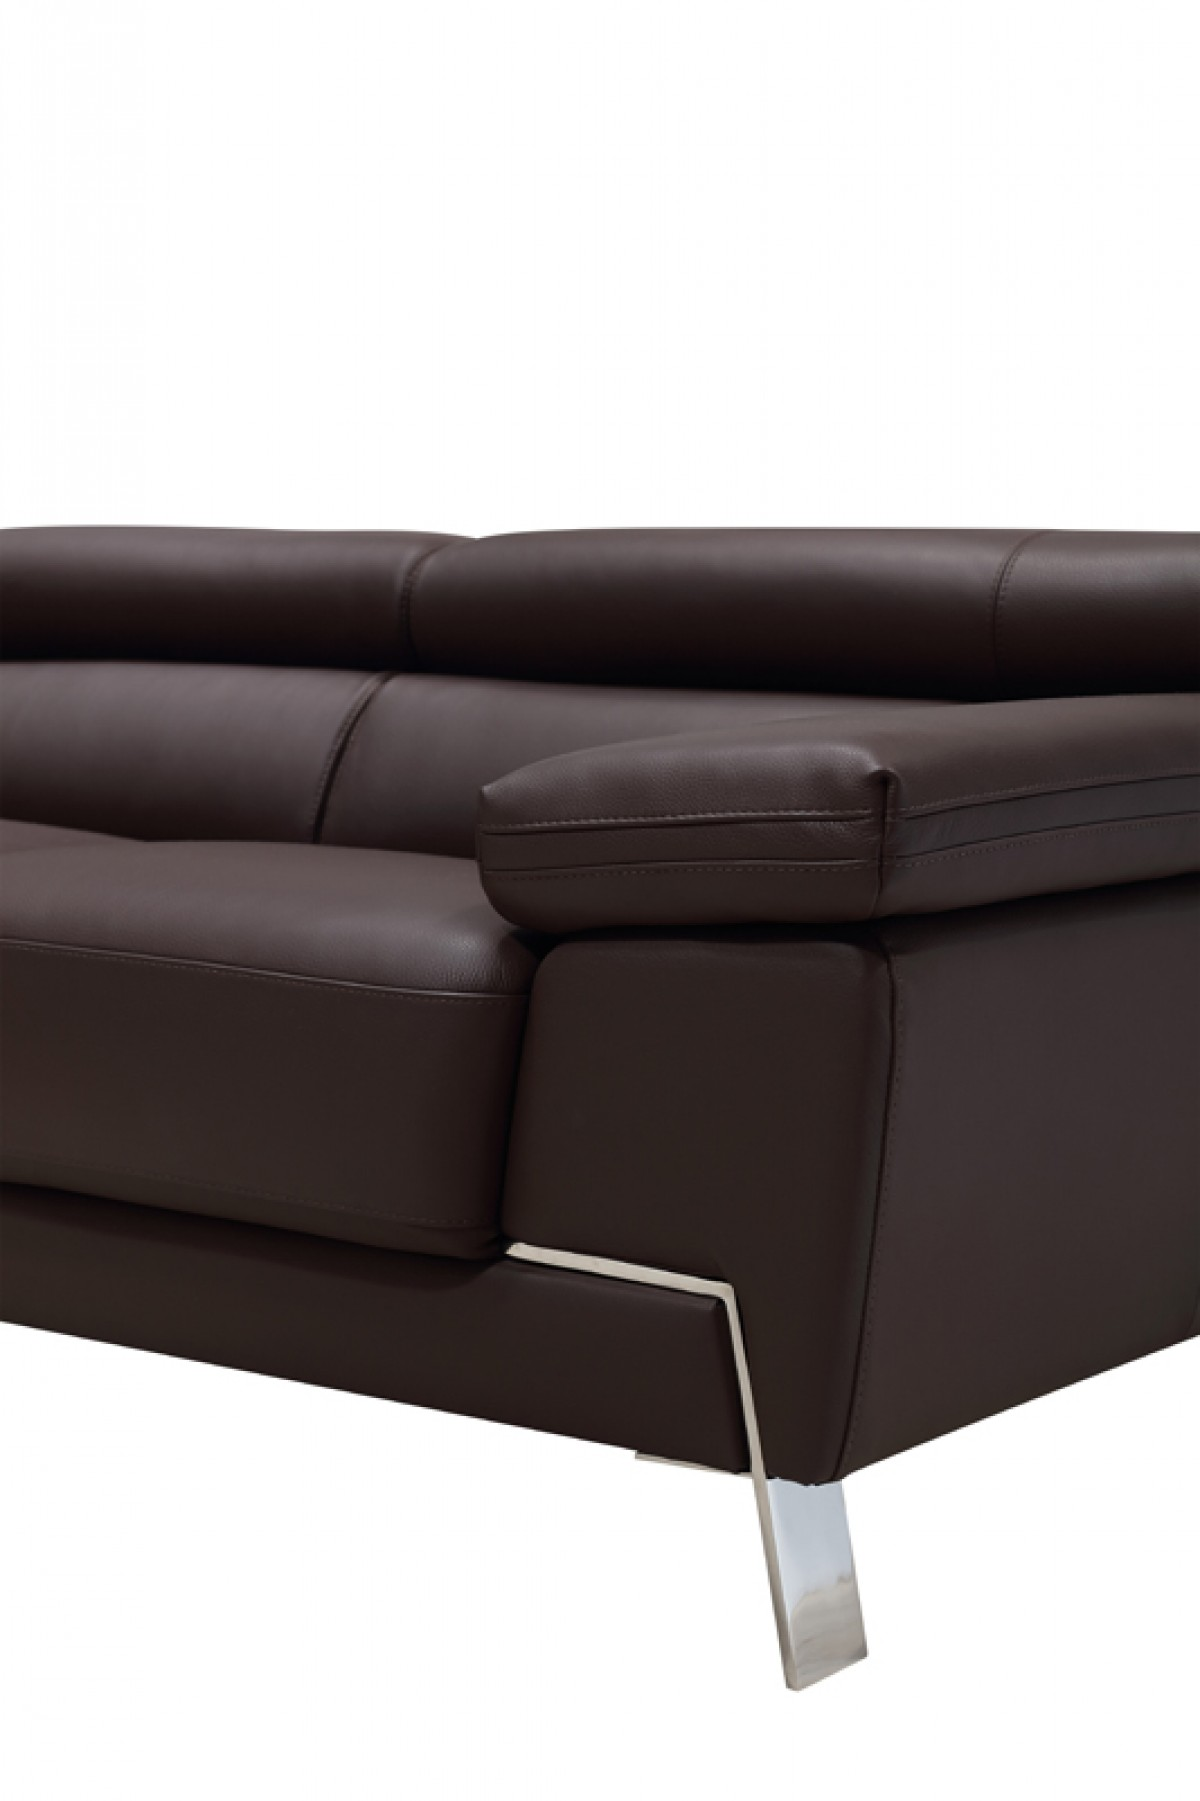 Wanda Modern Brown Leather Sofa Set